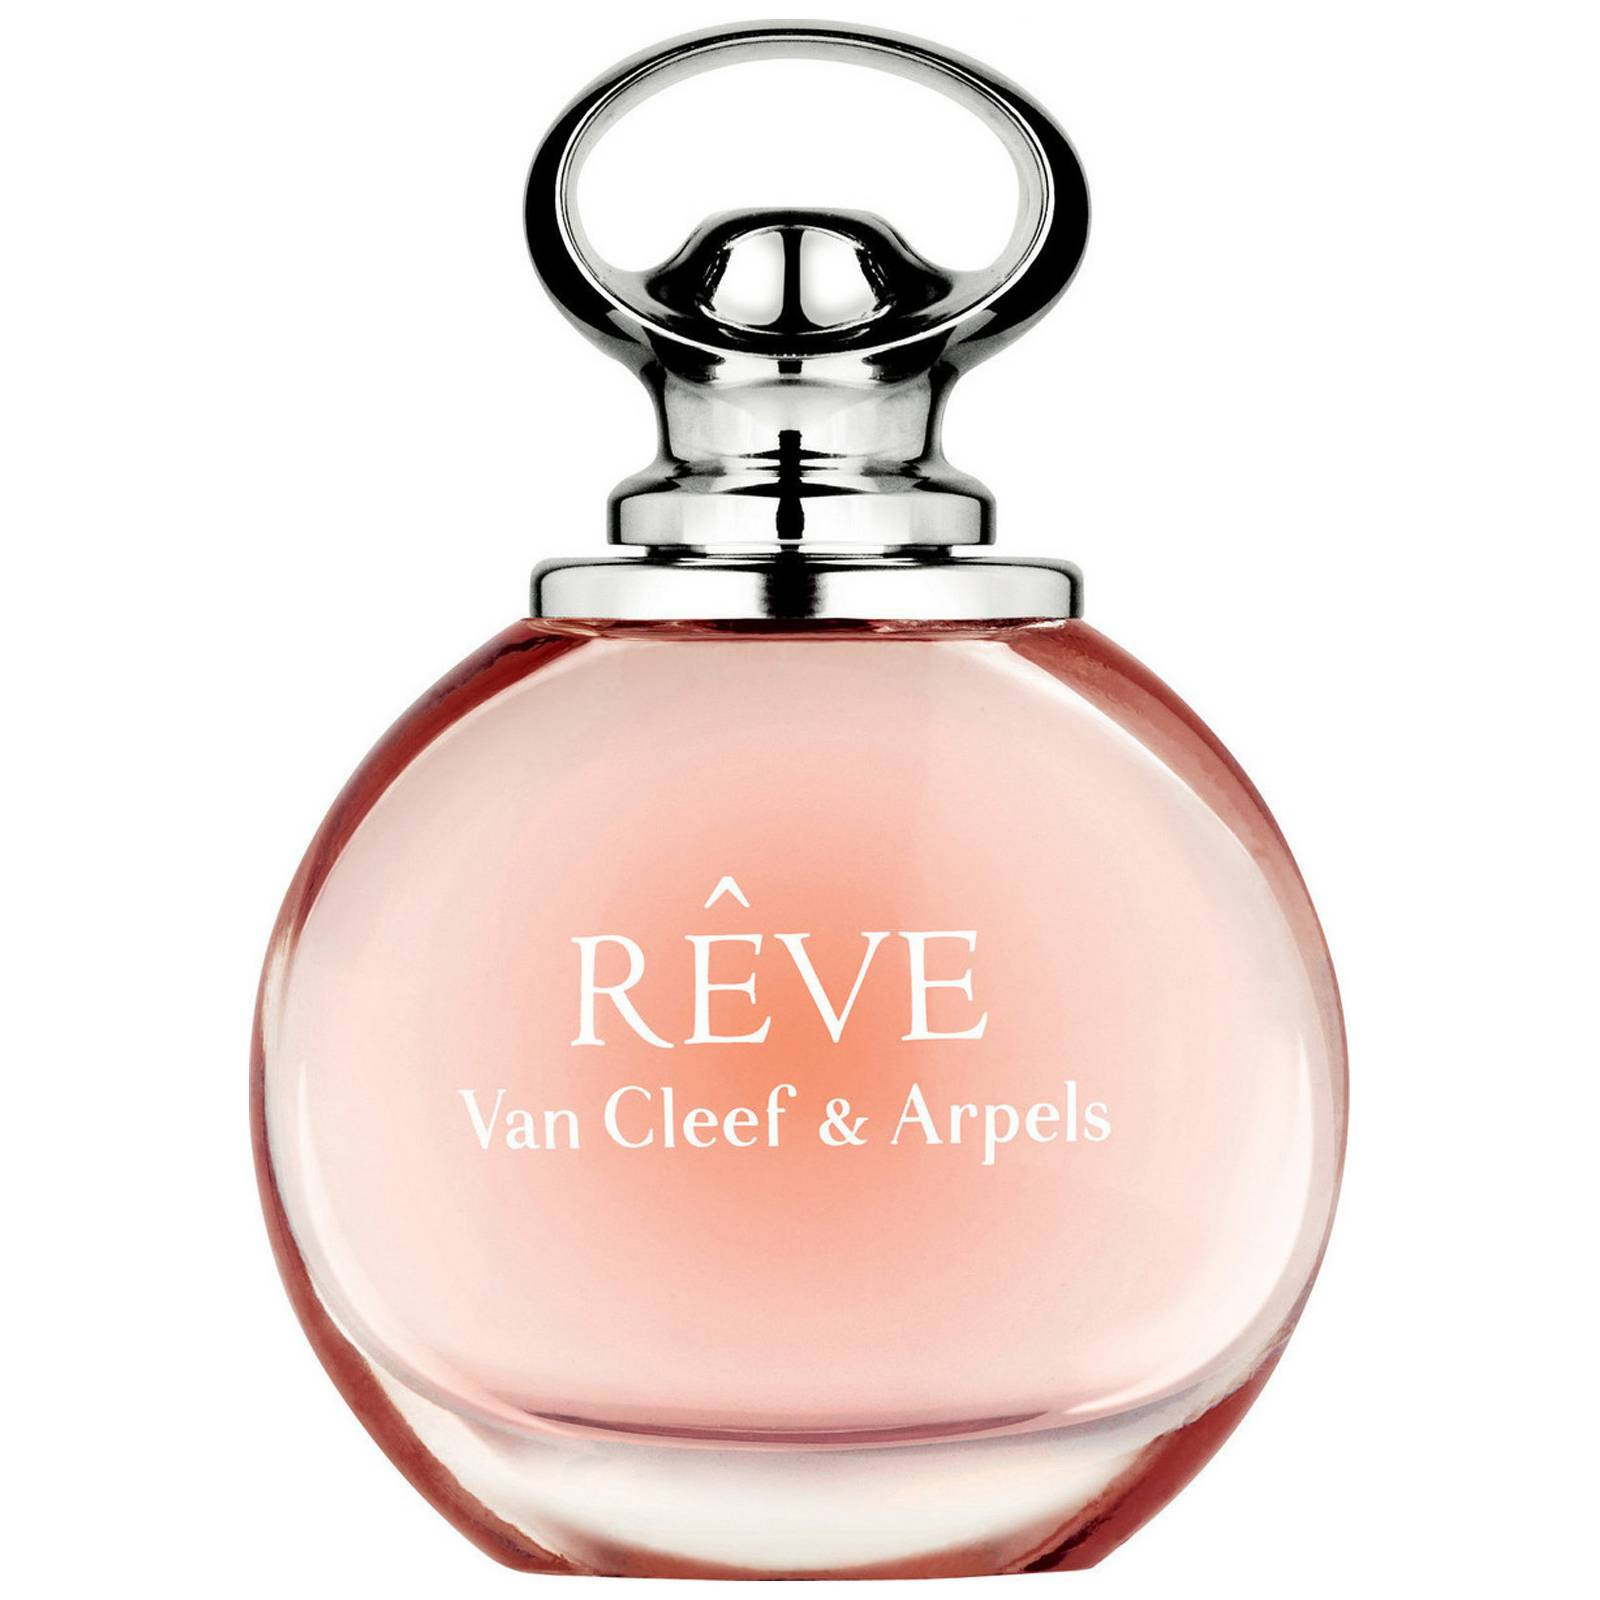 Van Cleef and Arpels Reve 100ml Eau de Parfum Spray